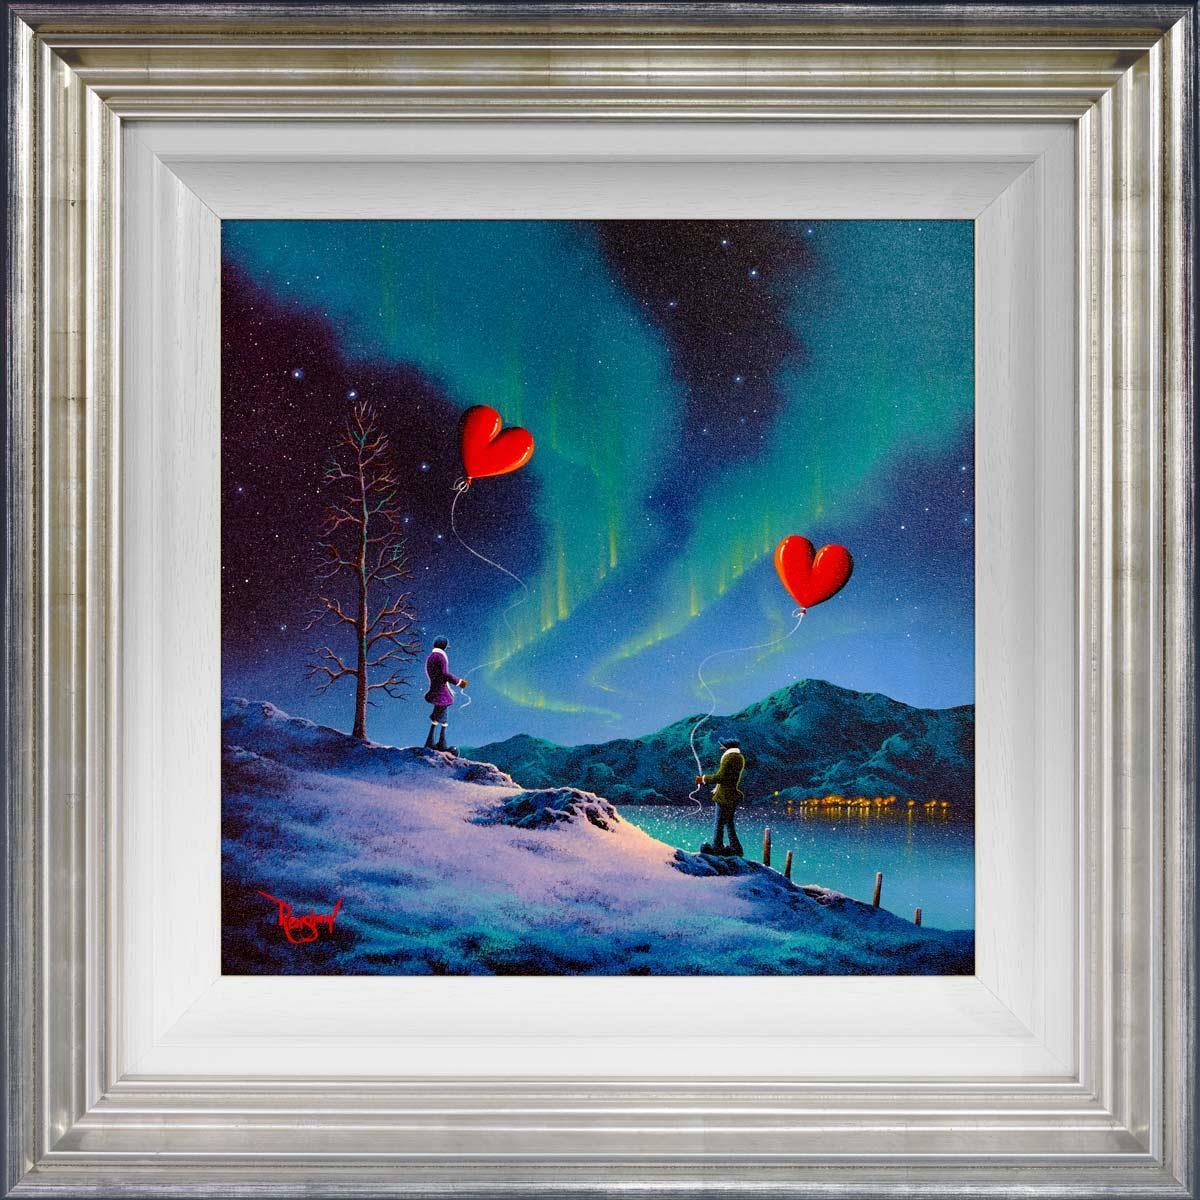 Follow Our Path - Original - SOLD David Renshaw